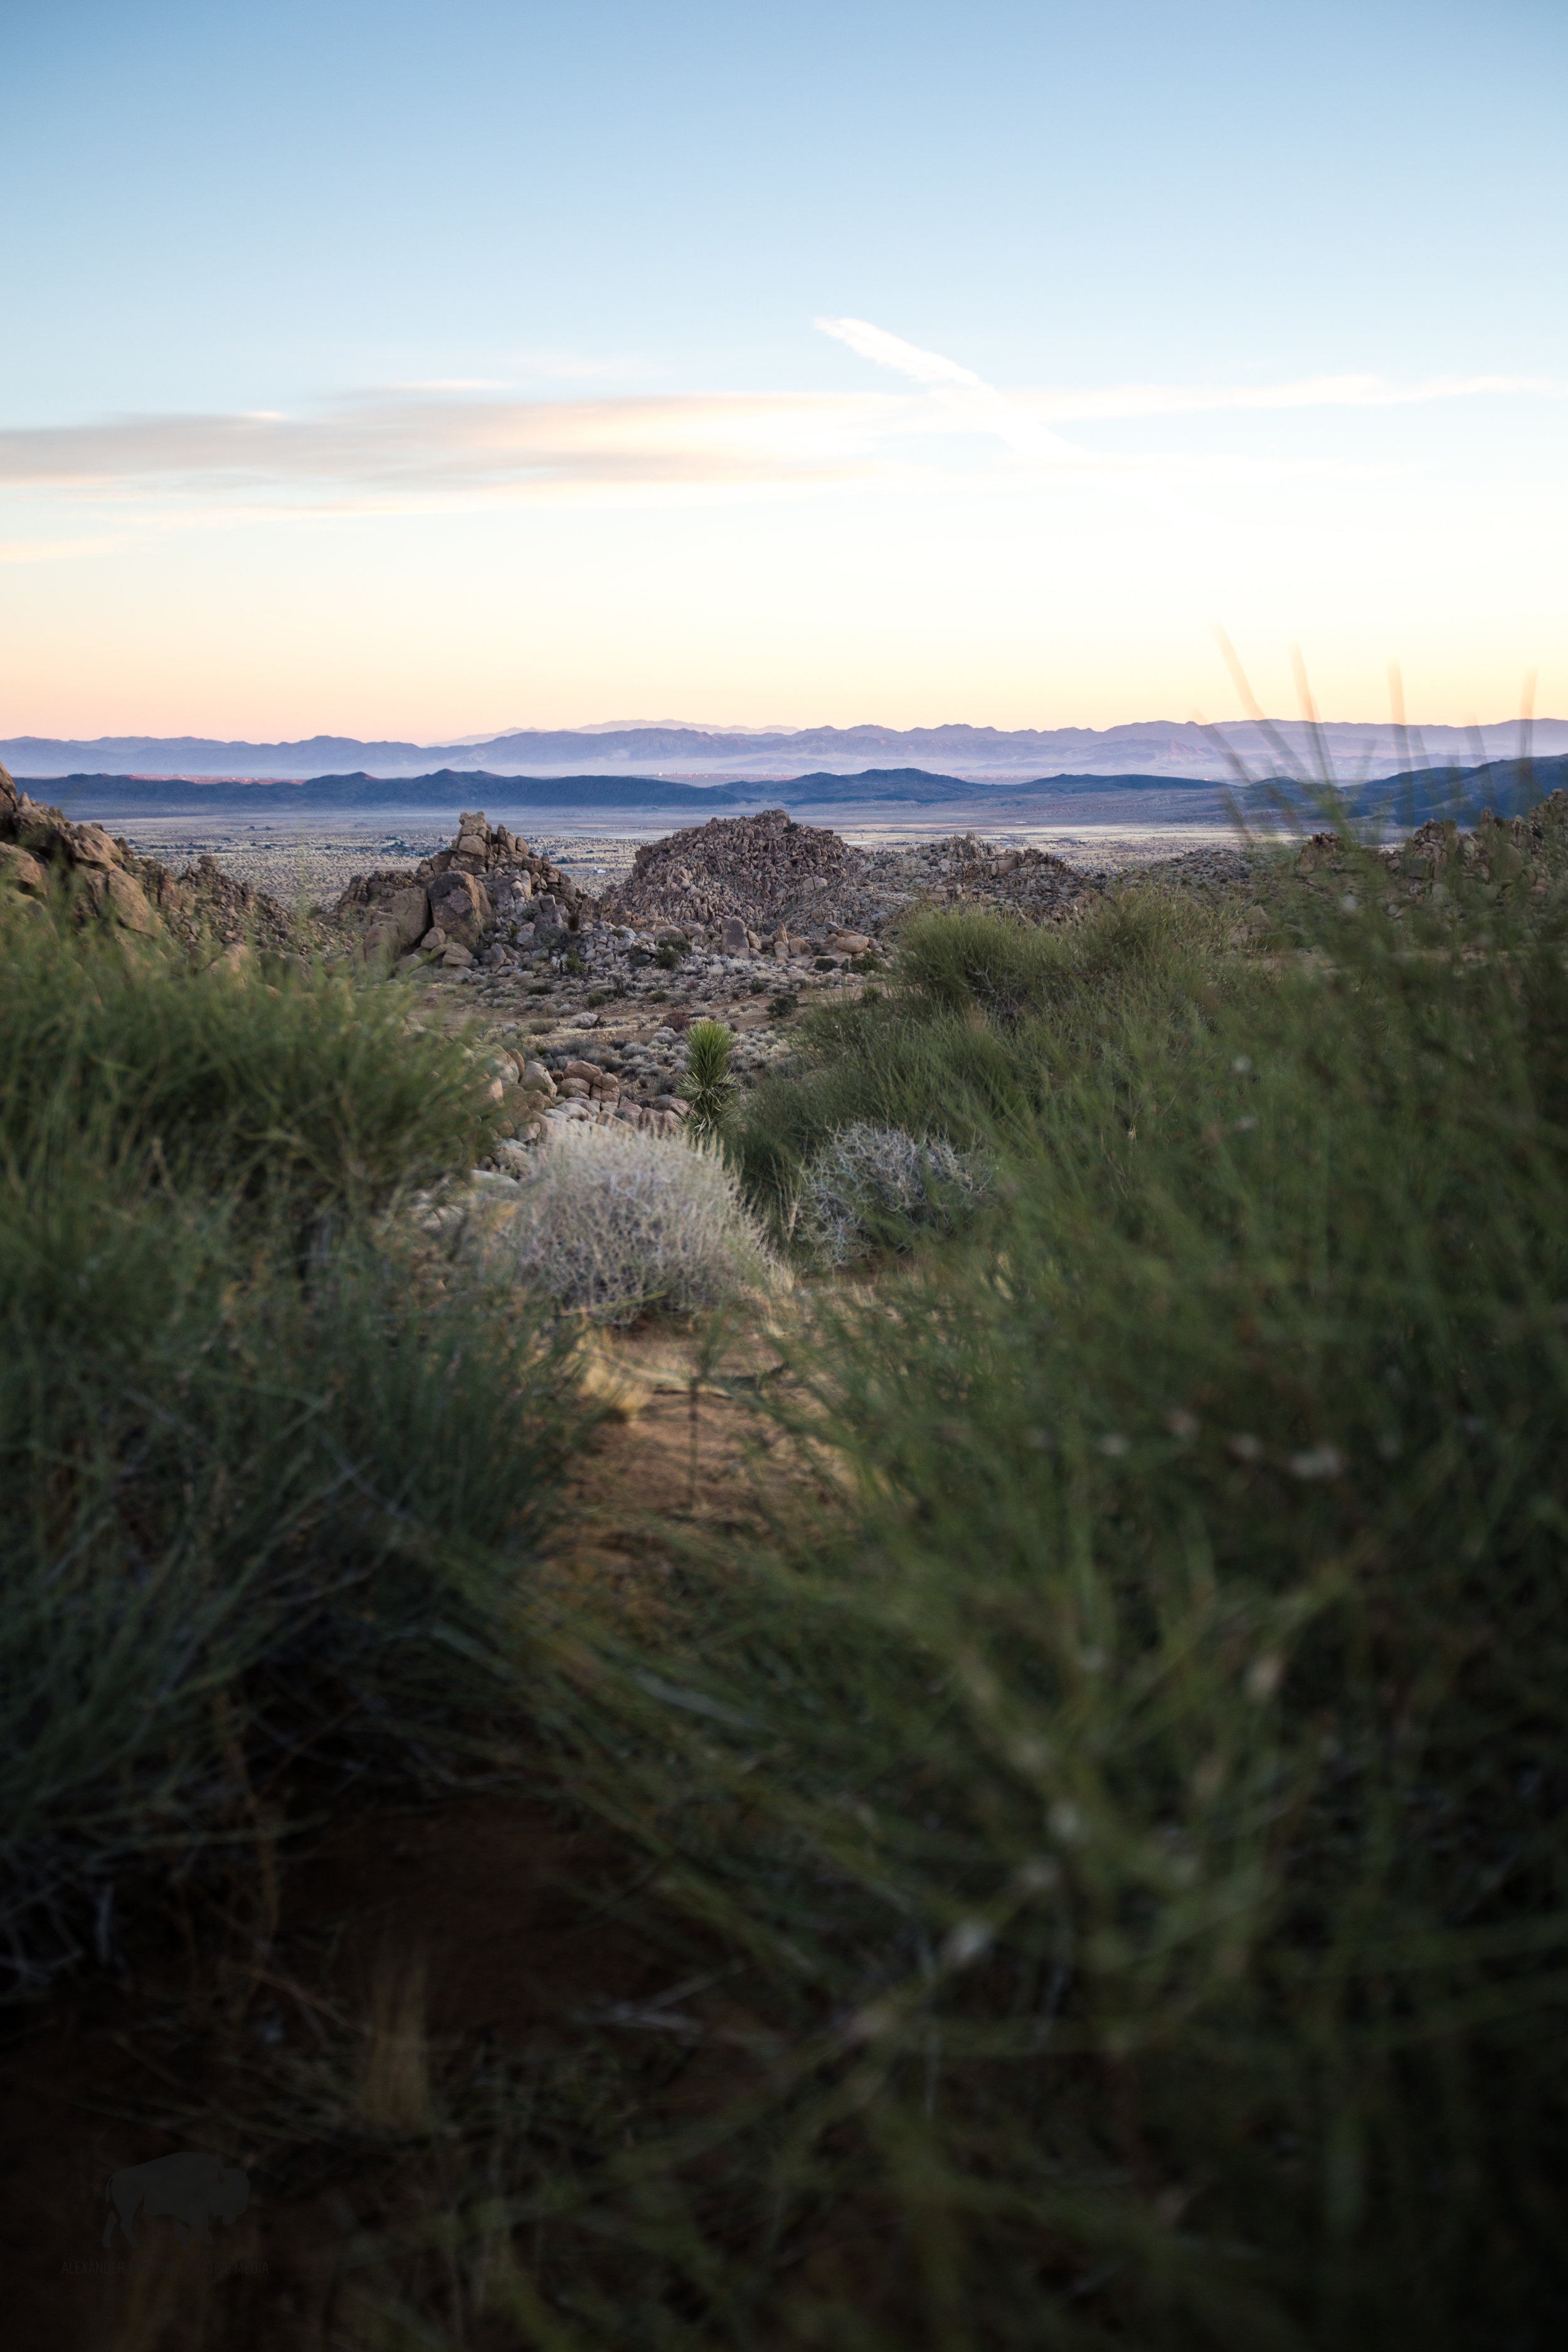 The beautiful pastel colors of the desert never cease to amaze.